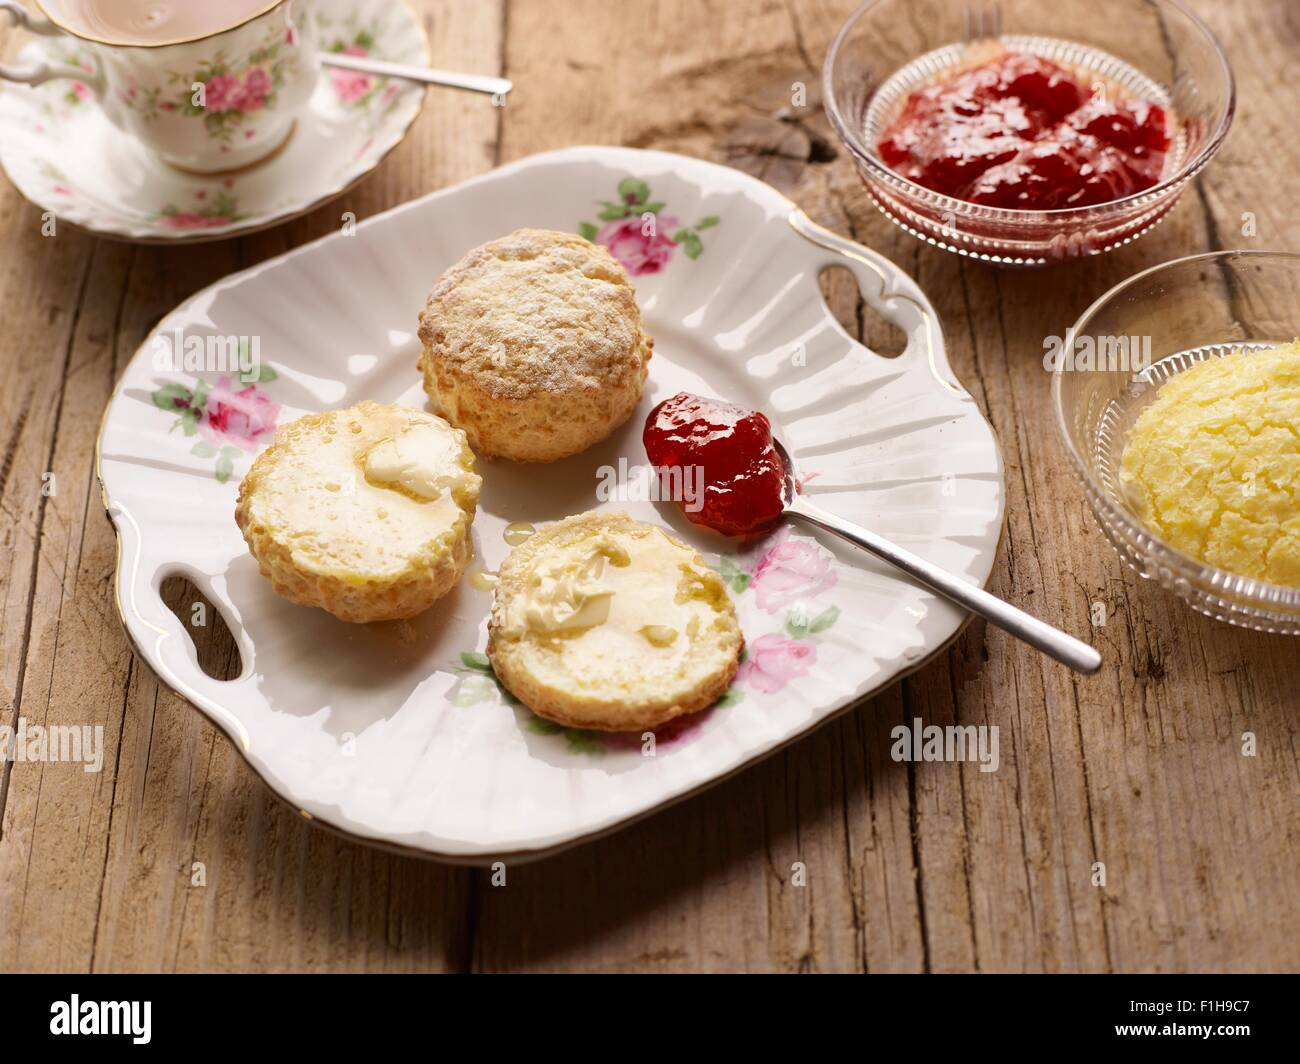 Afternoon tea of with fresh baked scones with jam and clotted cream - Stock Image